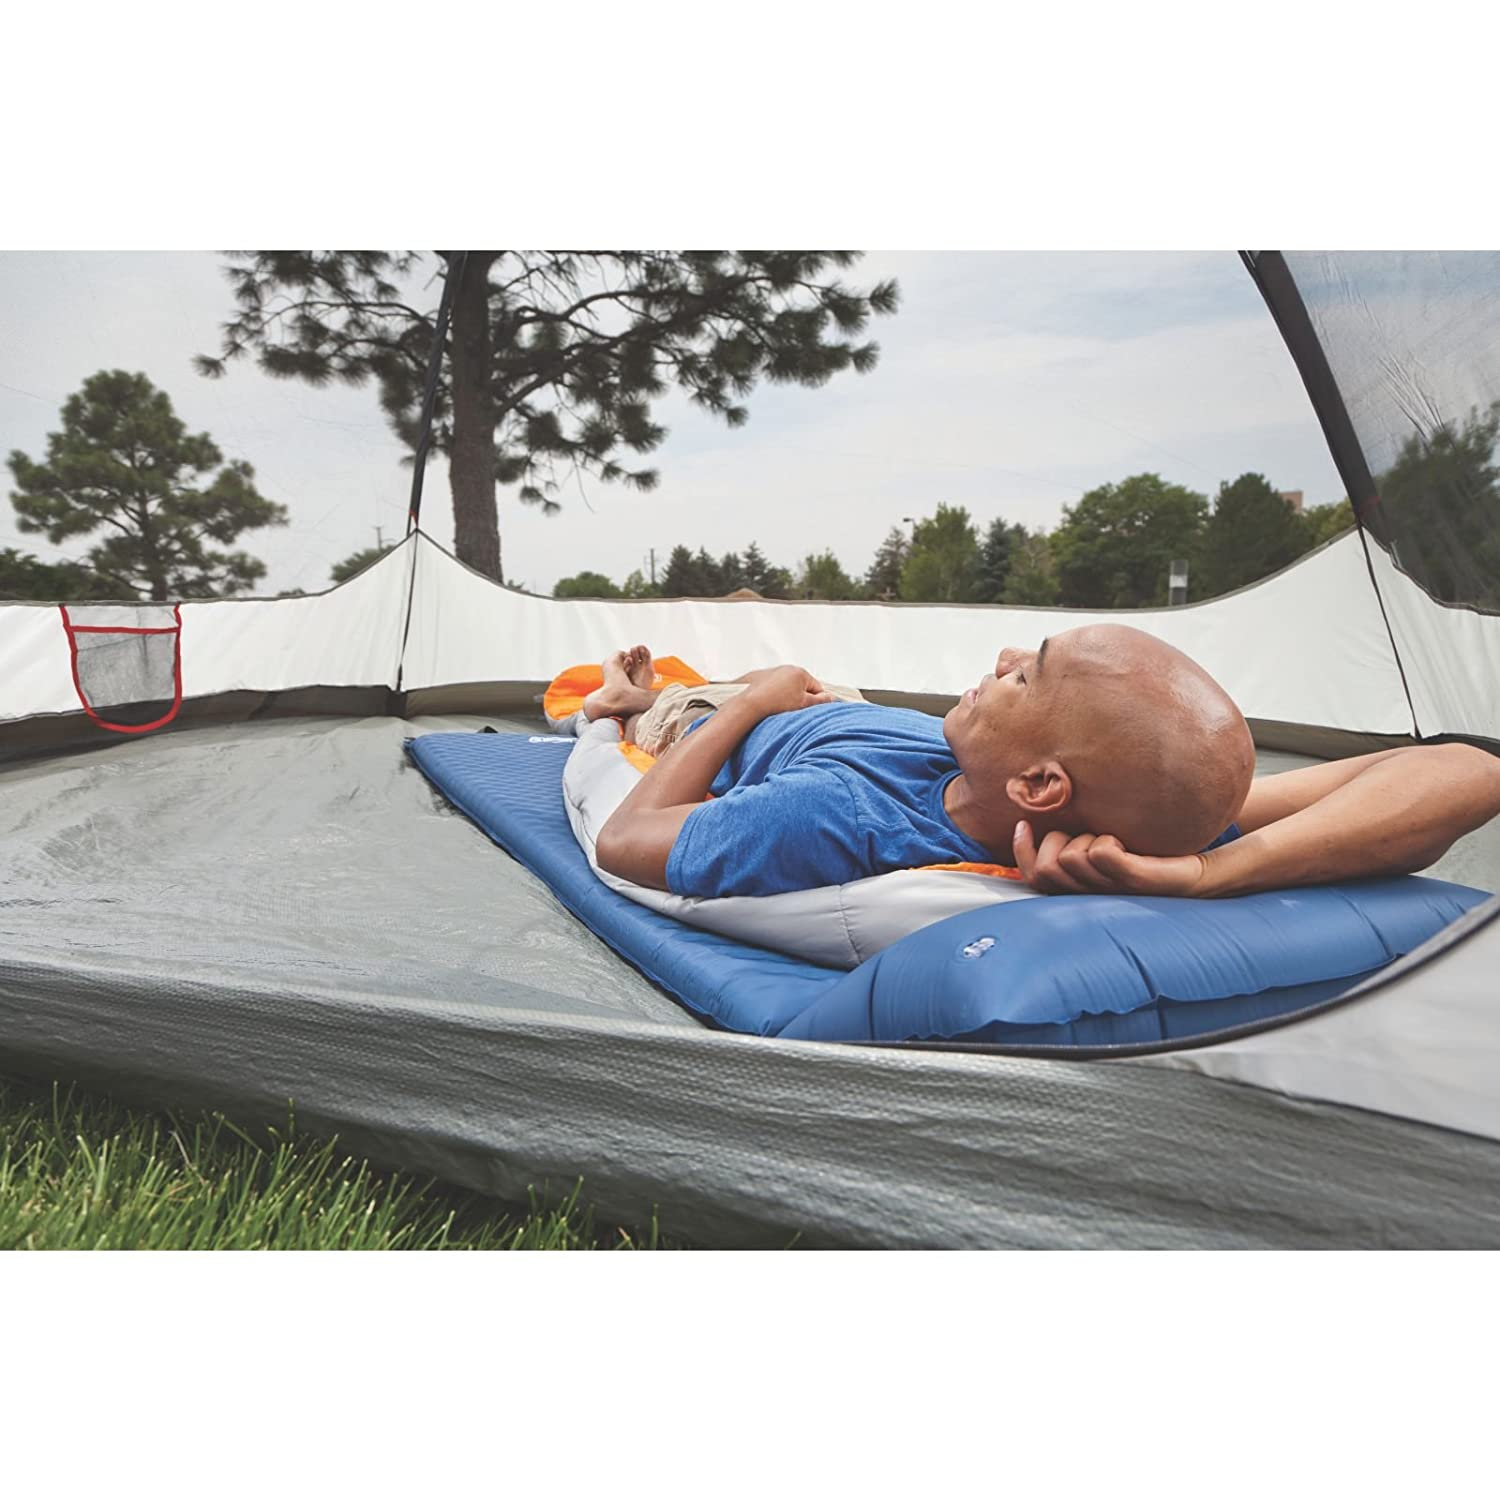 Amazon.com : Coleman Self-Inflating Camping Pad with Pillow : Self ...